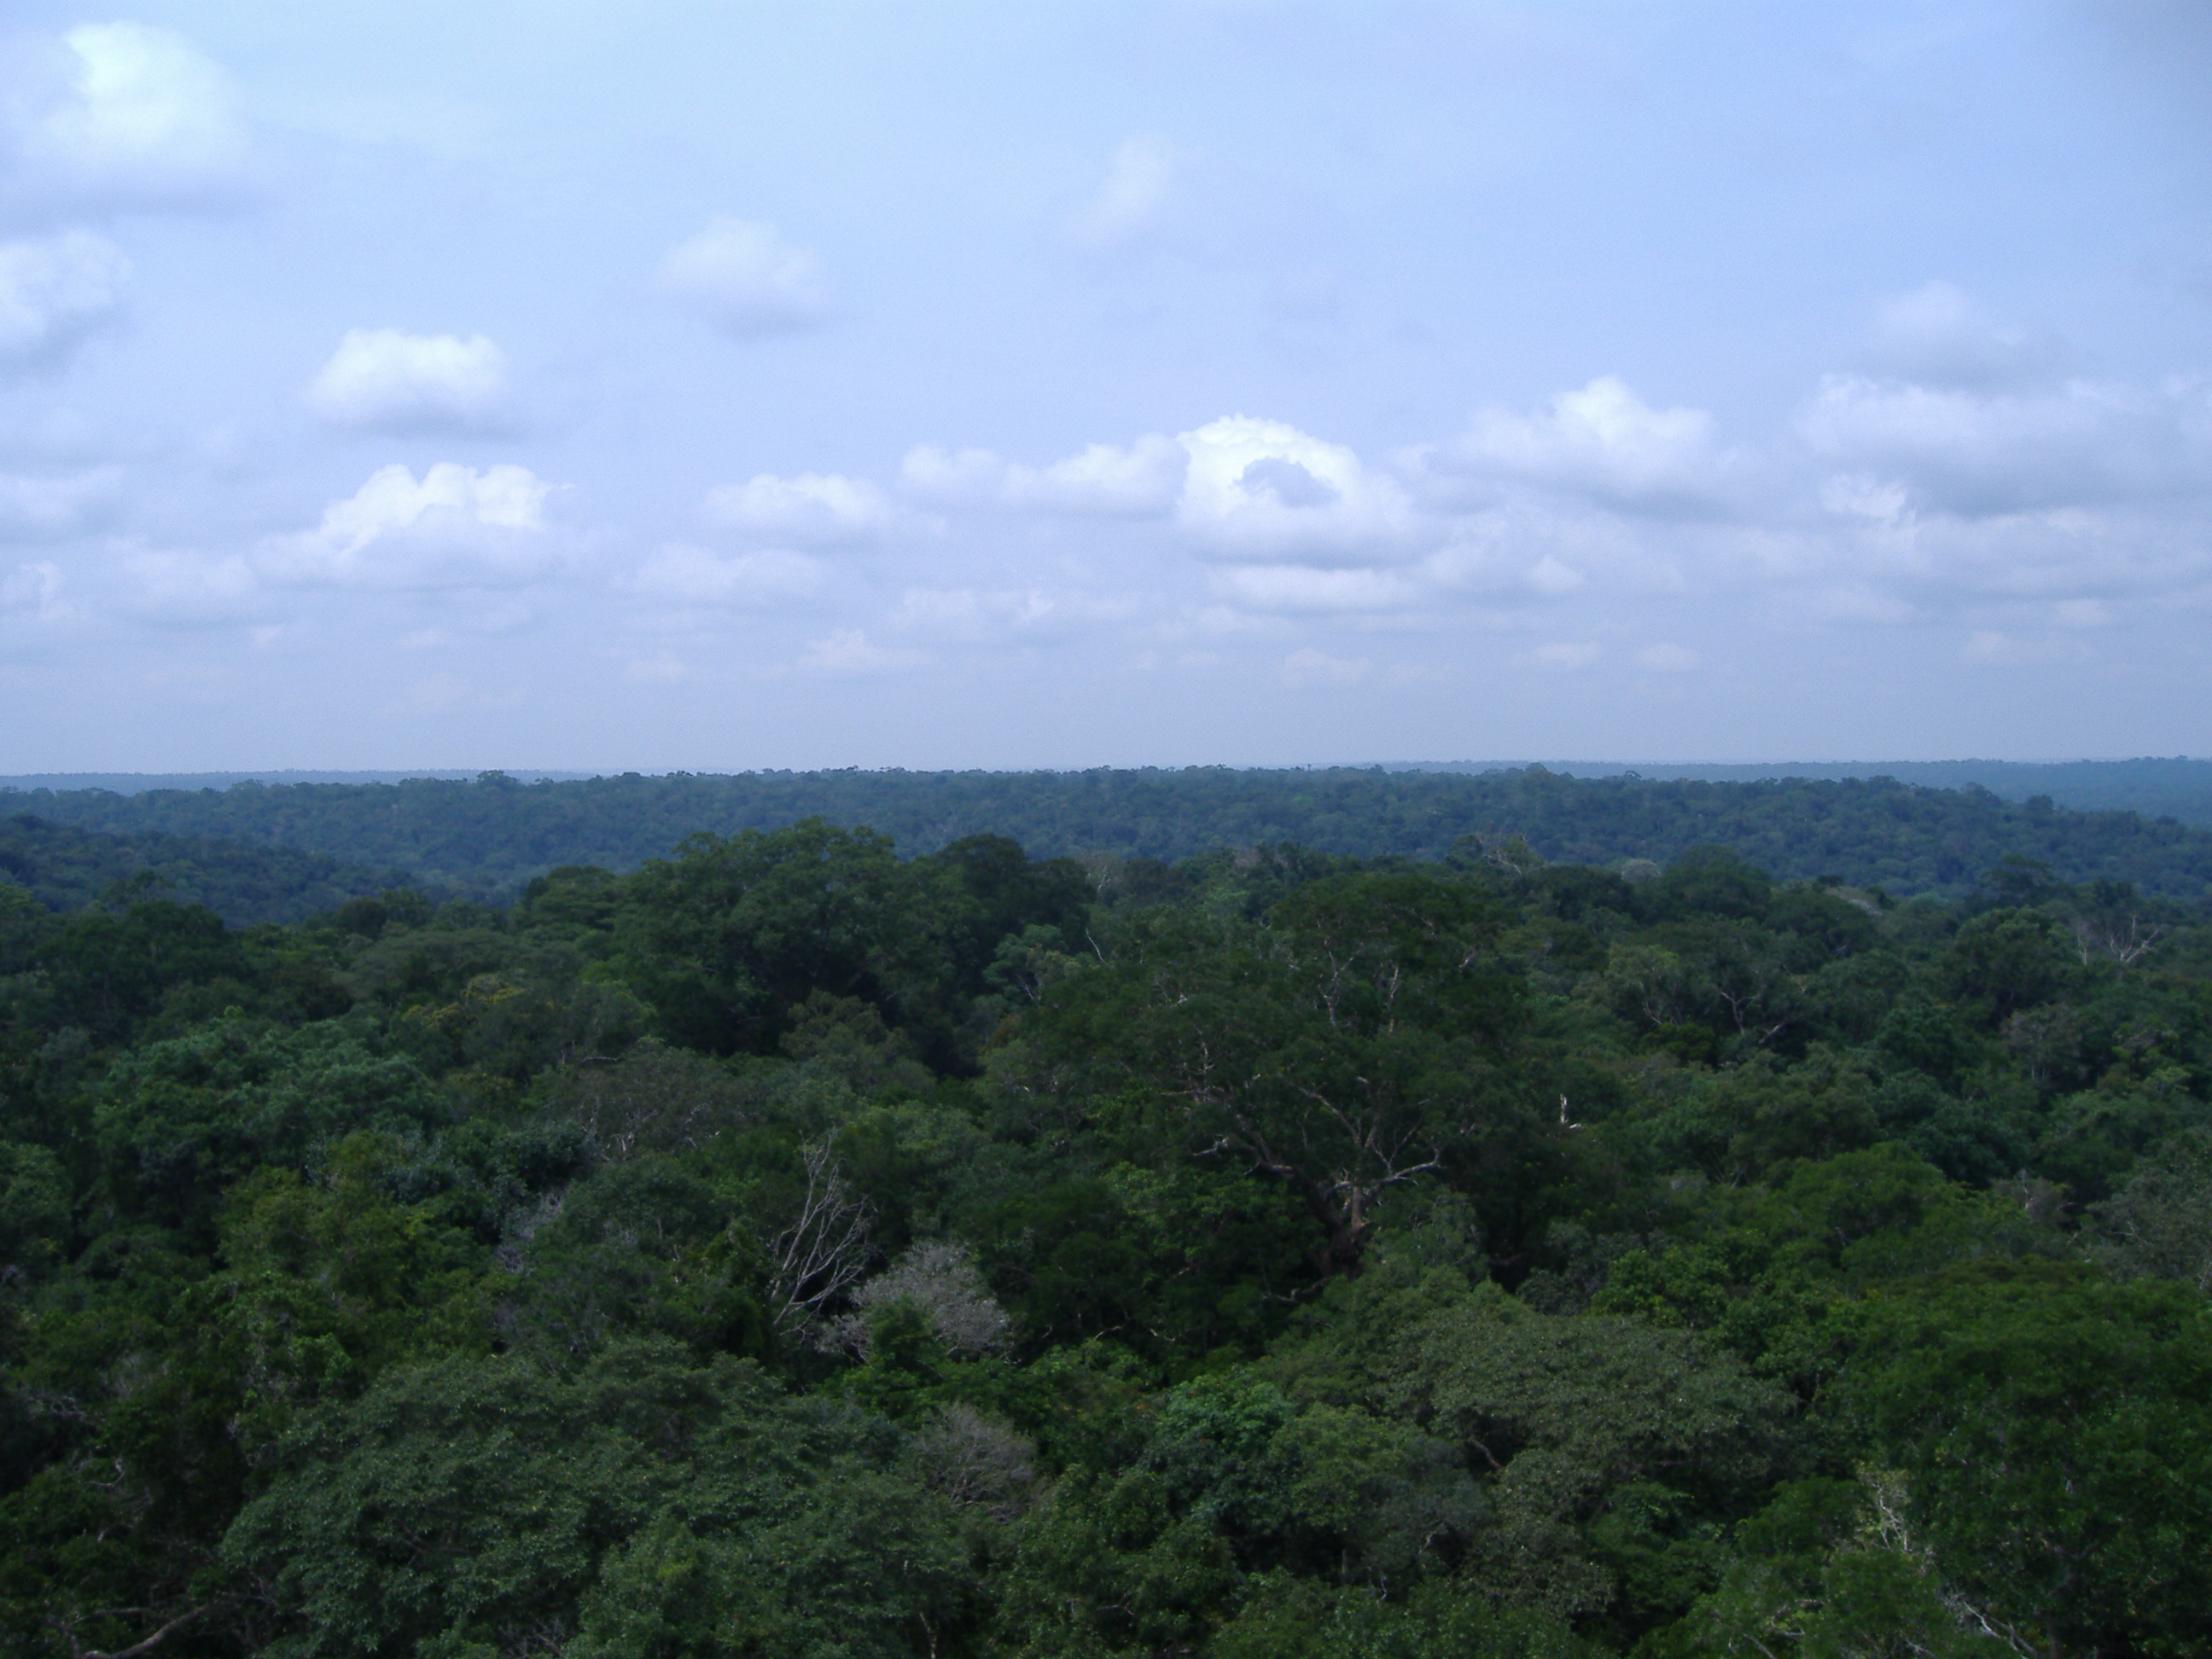 Amazon Rainforest More Able To Withstand Drought Than